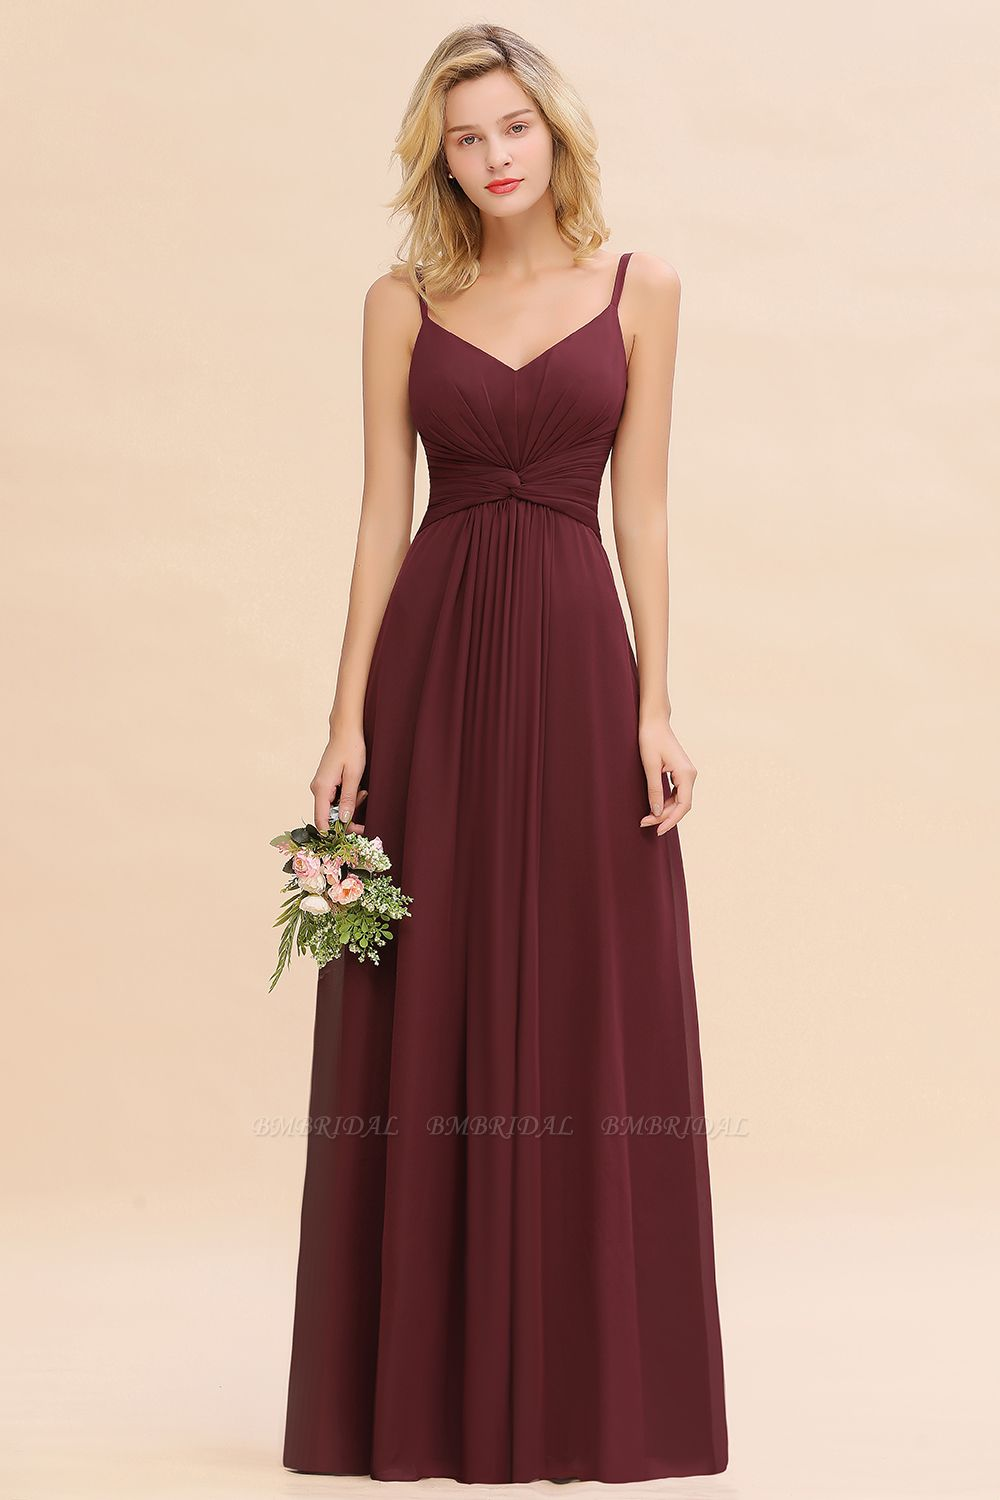 BMbridal Modest Ruffle Spaghetti Straps Backless Burgundy Bridesmaid Dresses Affordable